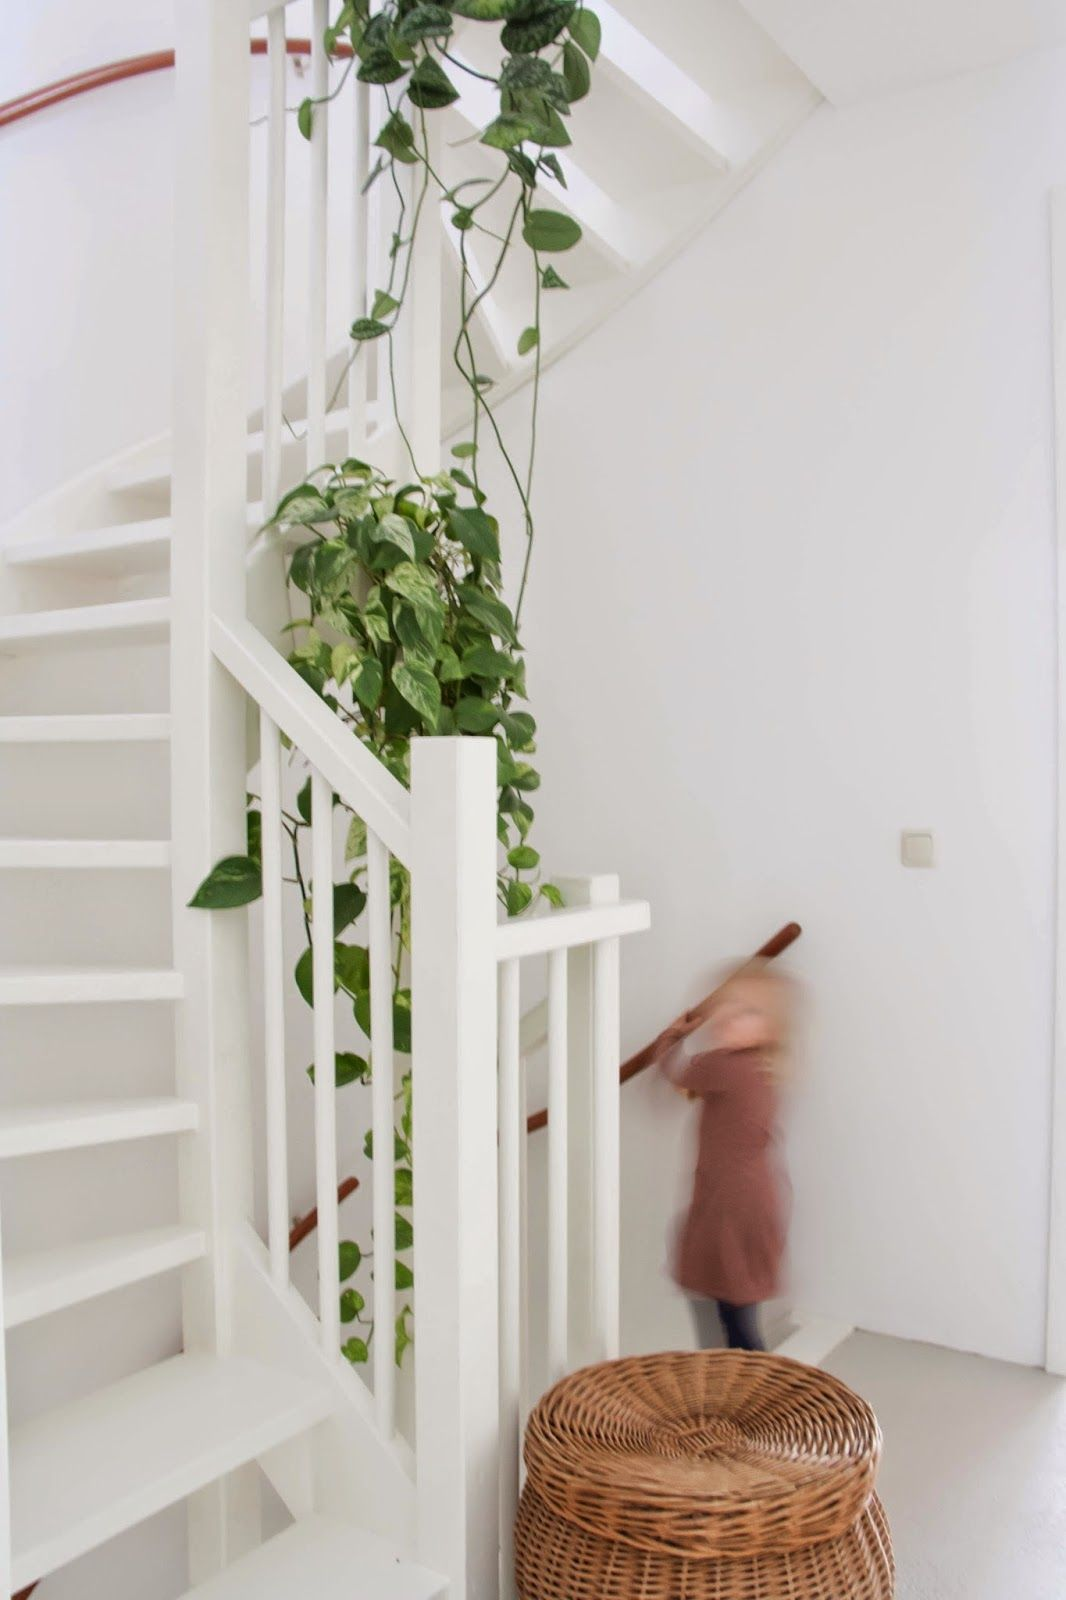 Hangplant Slaapkamer I Love Having The Hanging Plant In The Stairwell I Think Having